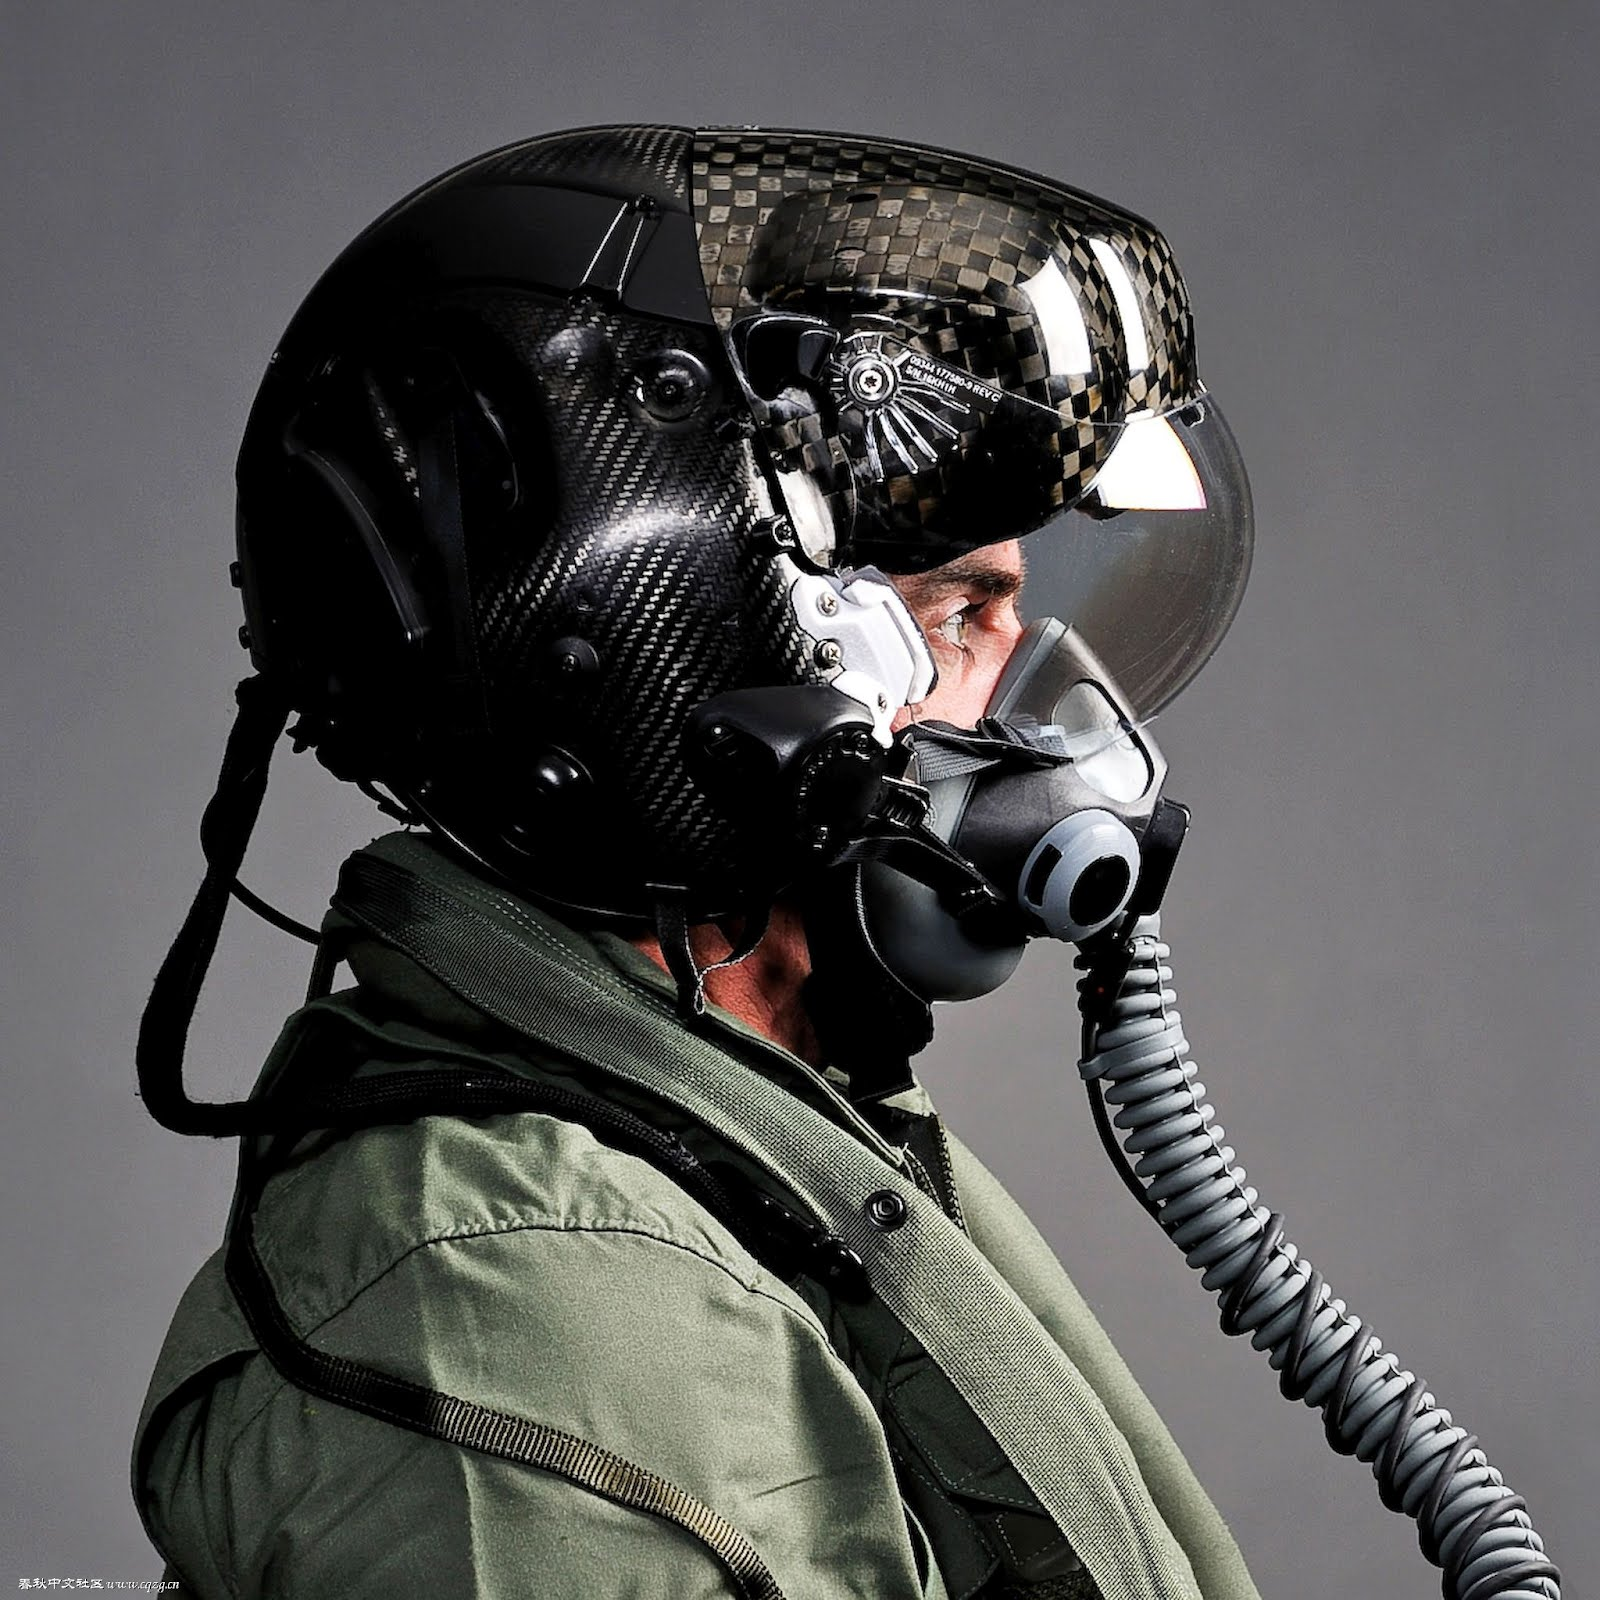 Naval Open Source Intelligence F 35 Helmets Face Tough Tests